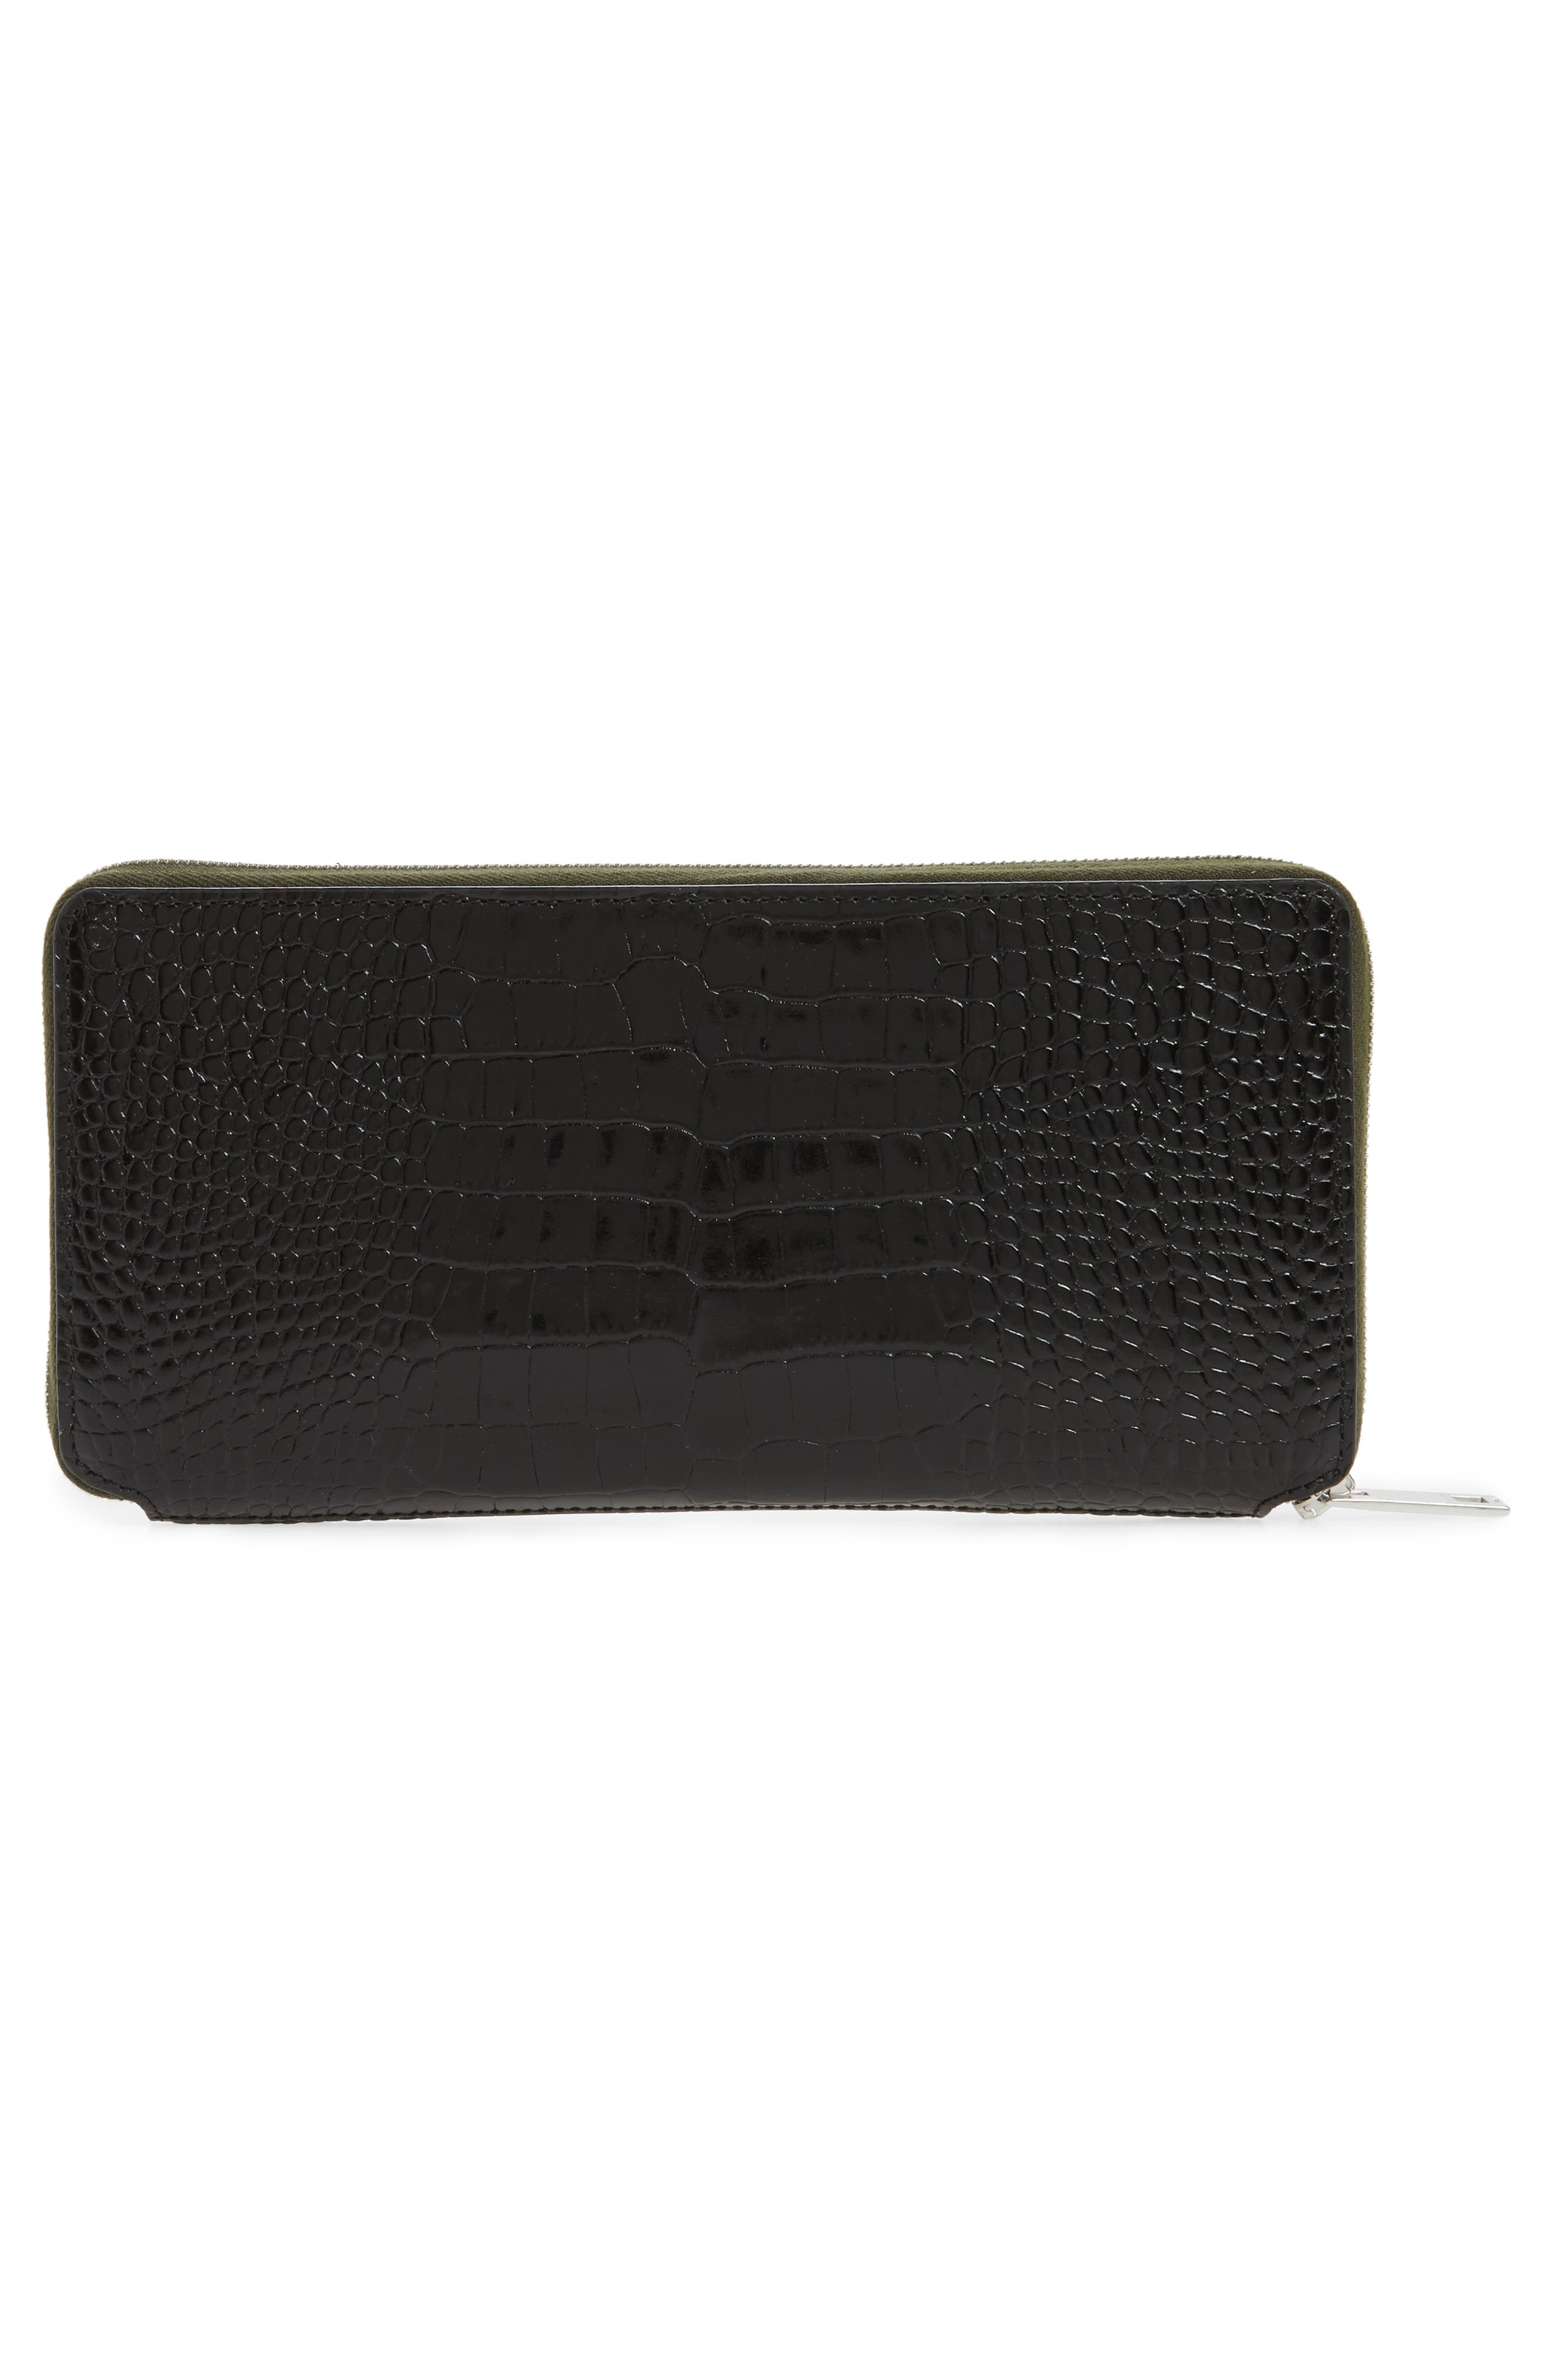 Croc Embossed Zip Around Leather Wallet,                             Alternate thumbnail 5, color,